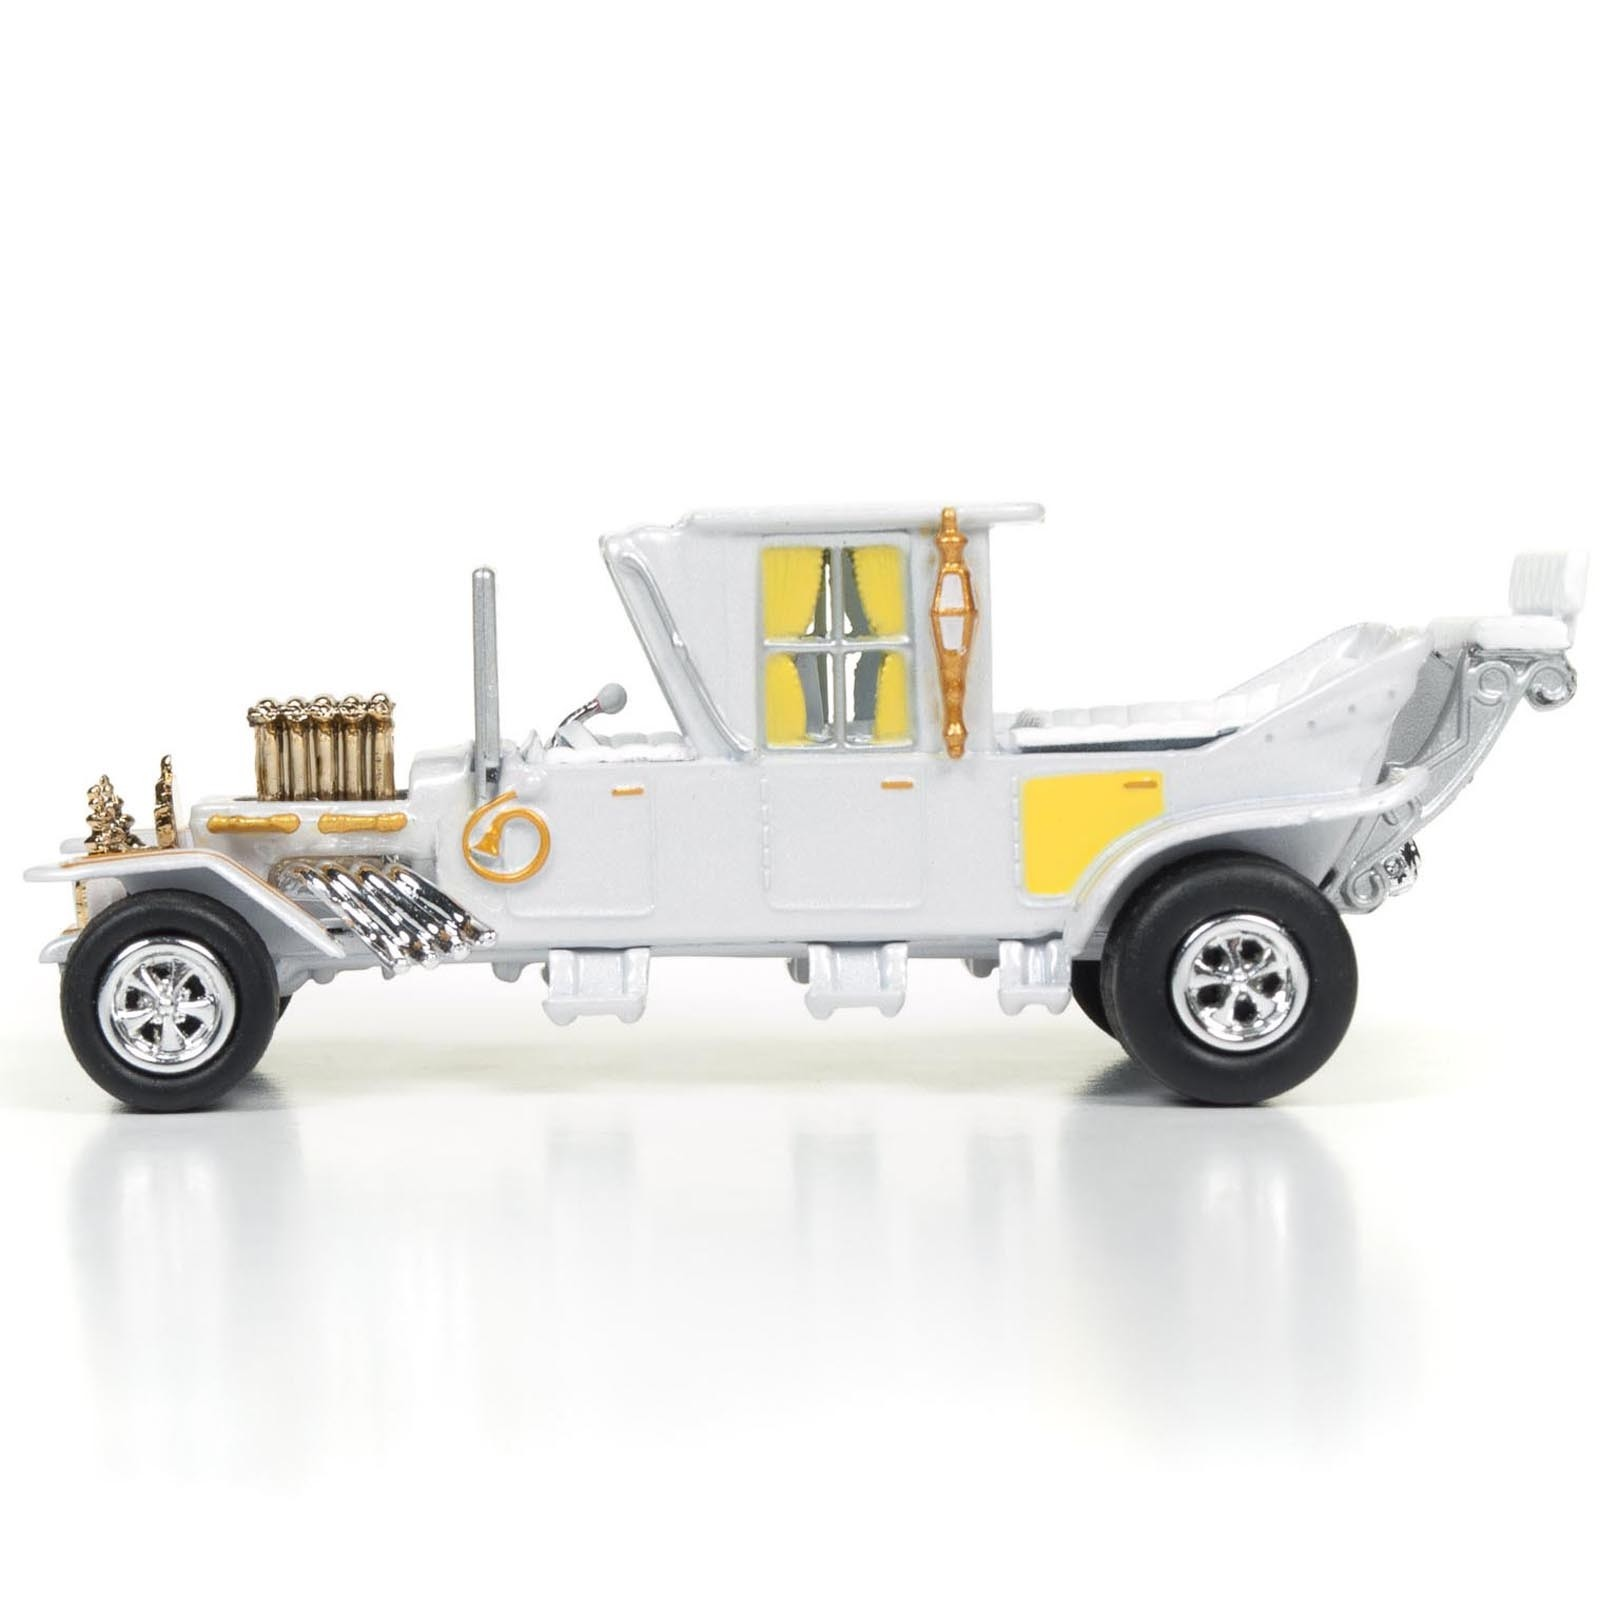 Miniatura - 1:64 - The Barris Koach - Carro Os Monstros - White Lightning - Silver Screen - Johnny Lightning